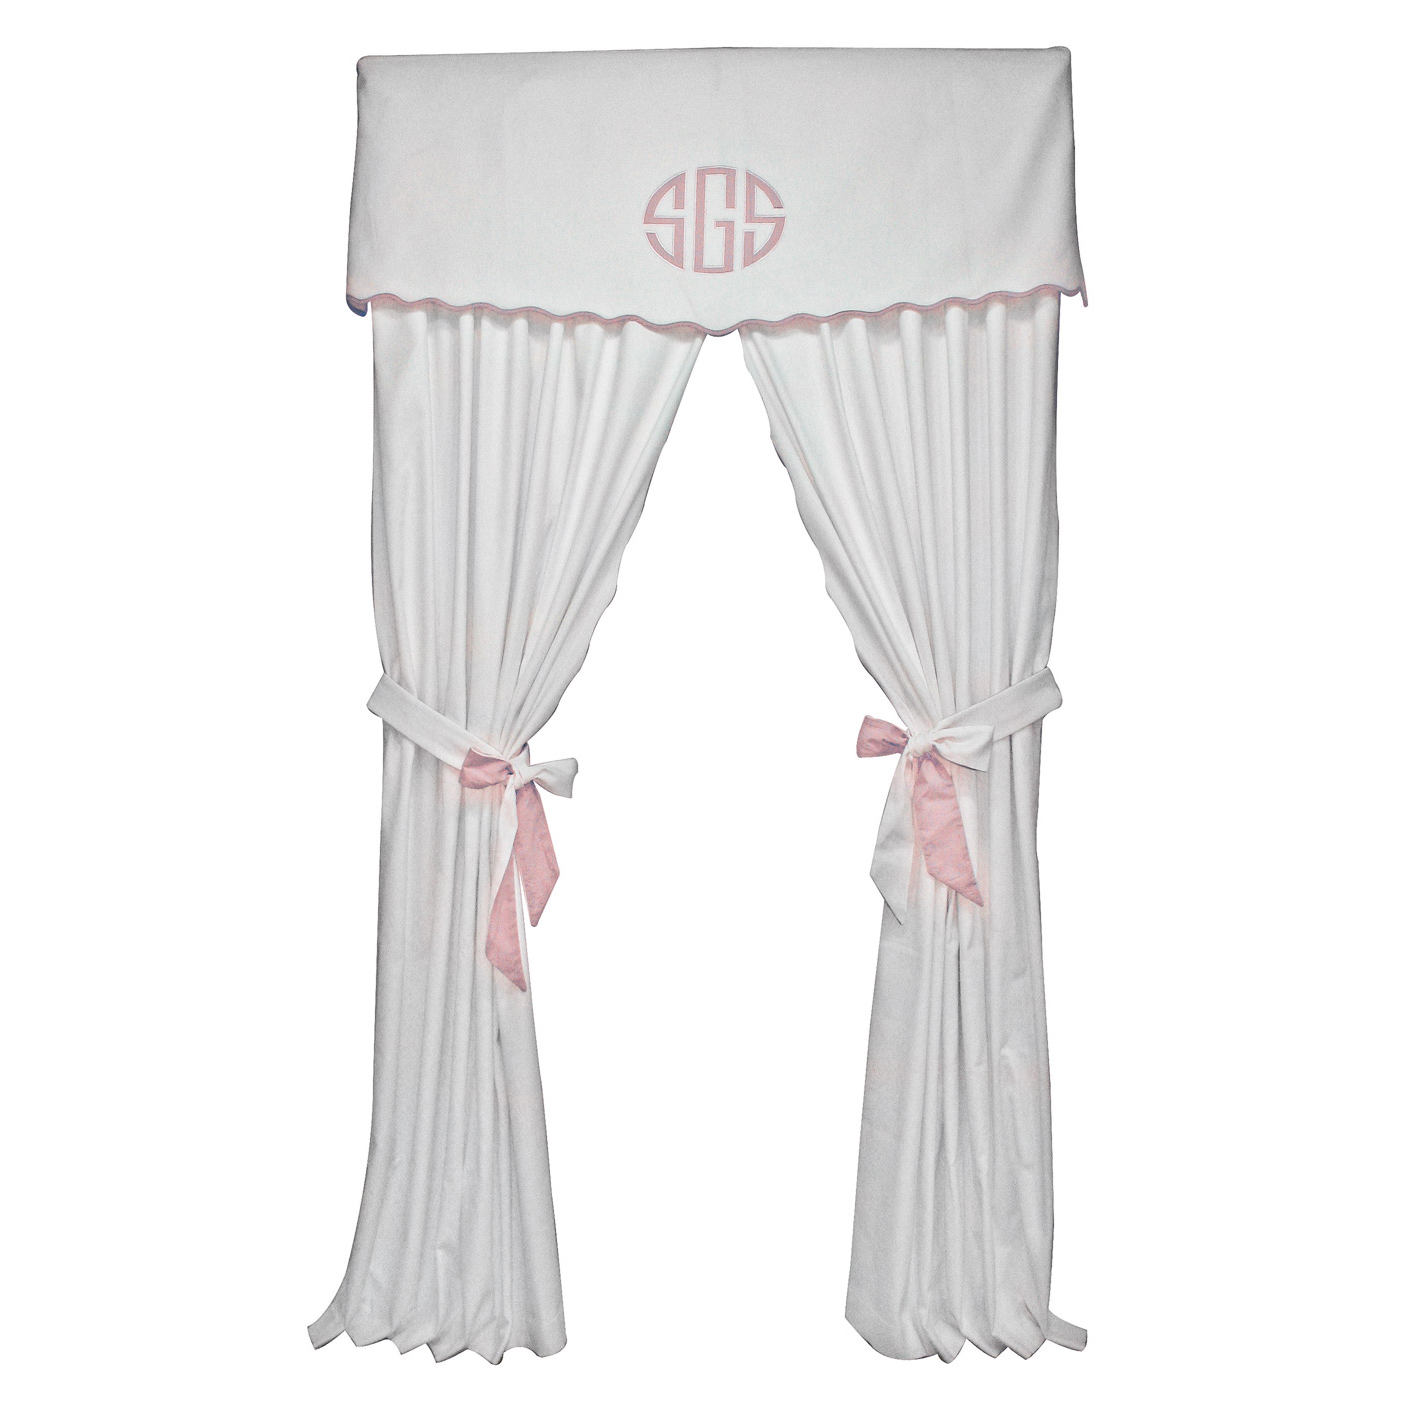 and navy ideas of curtains elegant blue vertical coffee blackout pink beautiful curtain white tables designs striped